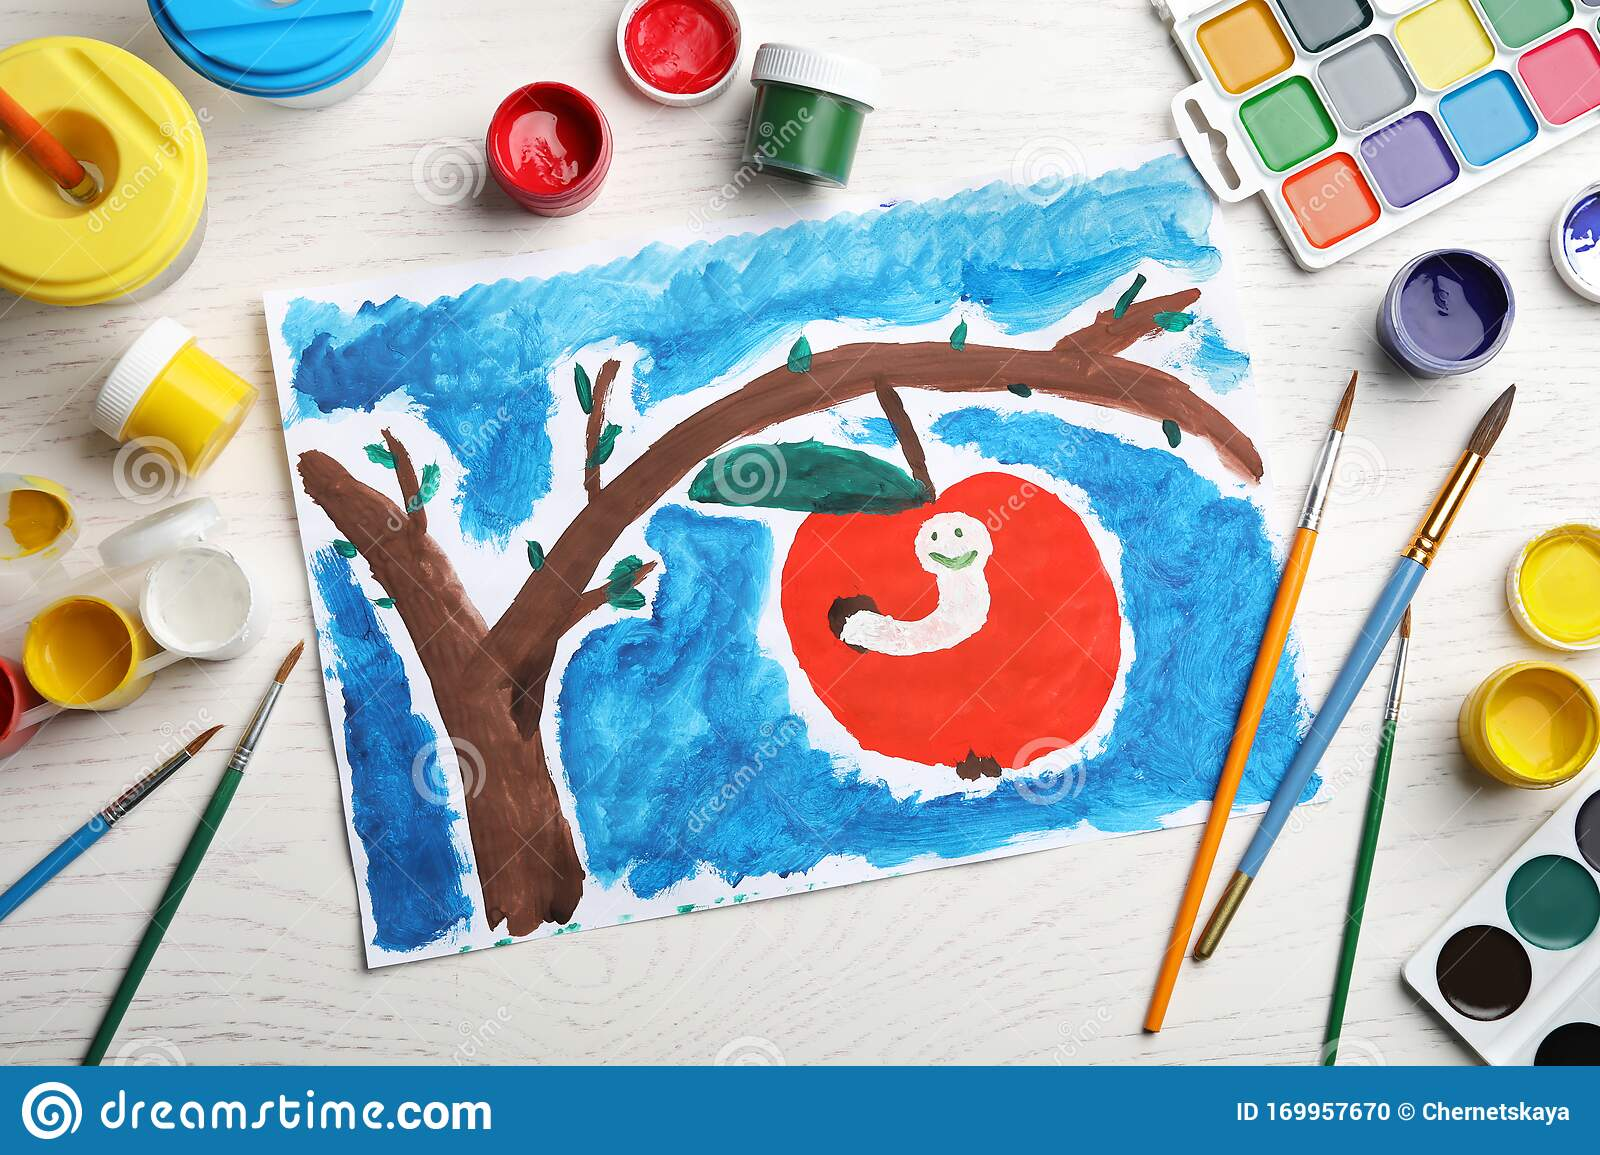 192 Apple Child Painting Photos Free Royalty Free Stock Photos From Dreamstime